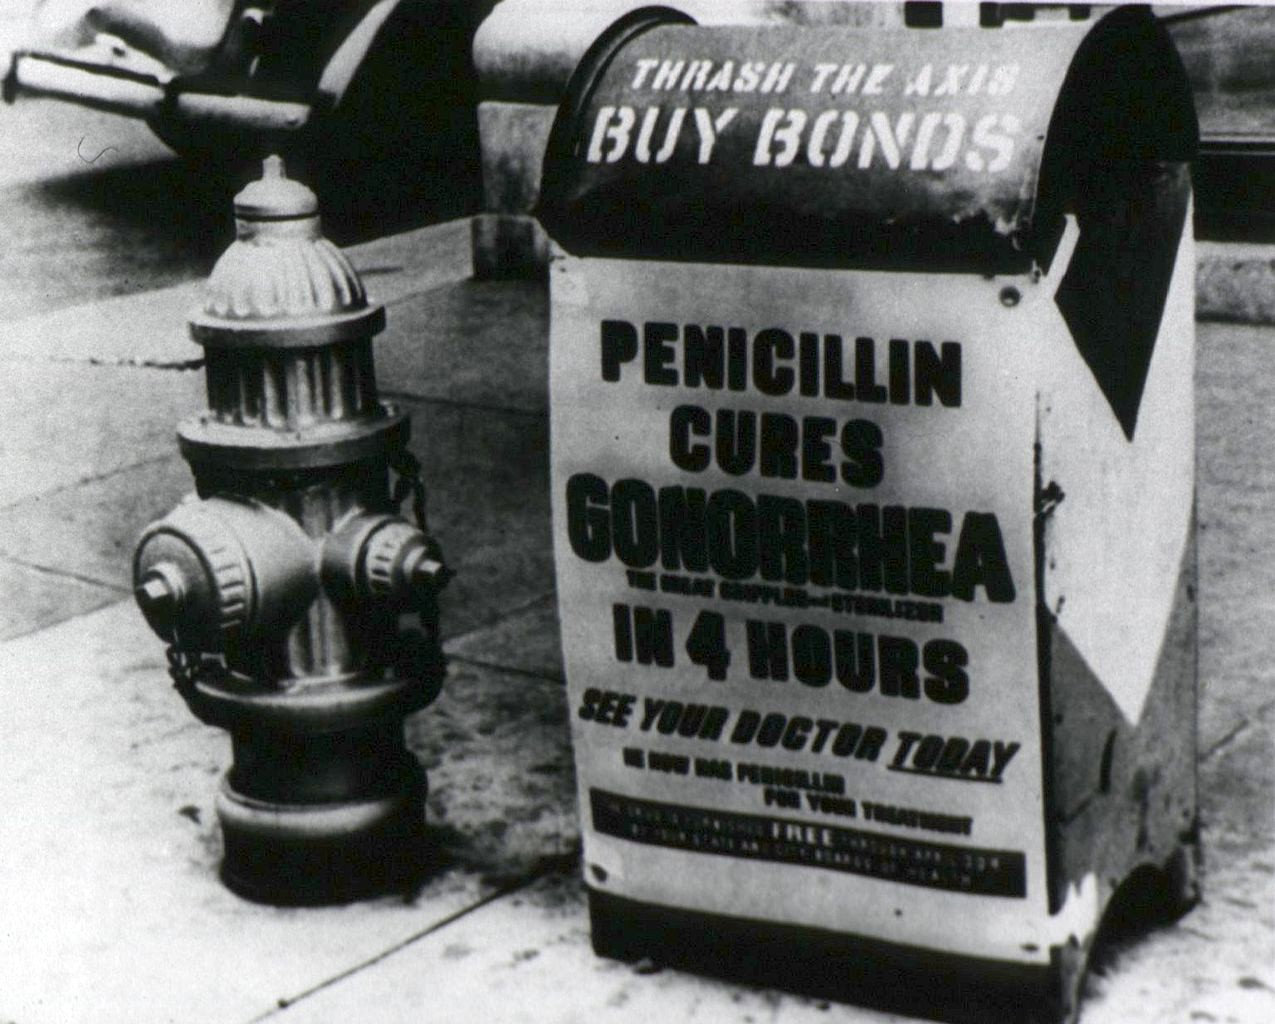 """1945 poster, """"Penicillin cures gonorrhea in 4 hours."""" Following a shaky start, production of the """"wonder drug"""" penicillin had taken off by the end of World War II. - NATIONAL INSTITUTES OF HEALTH"""